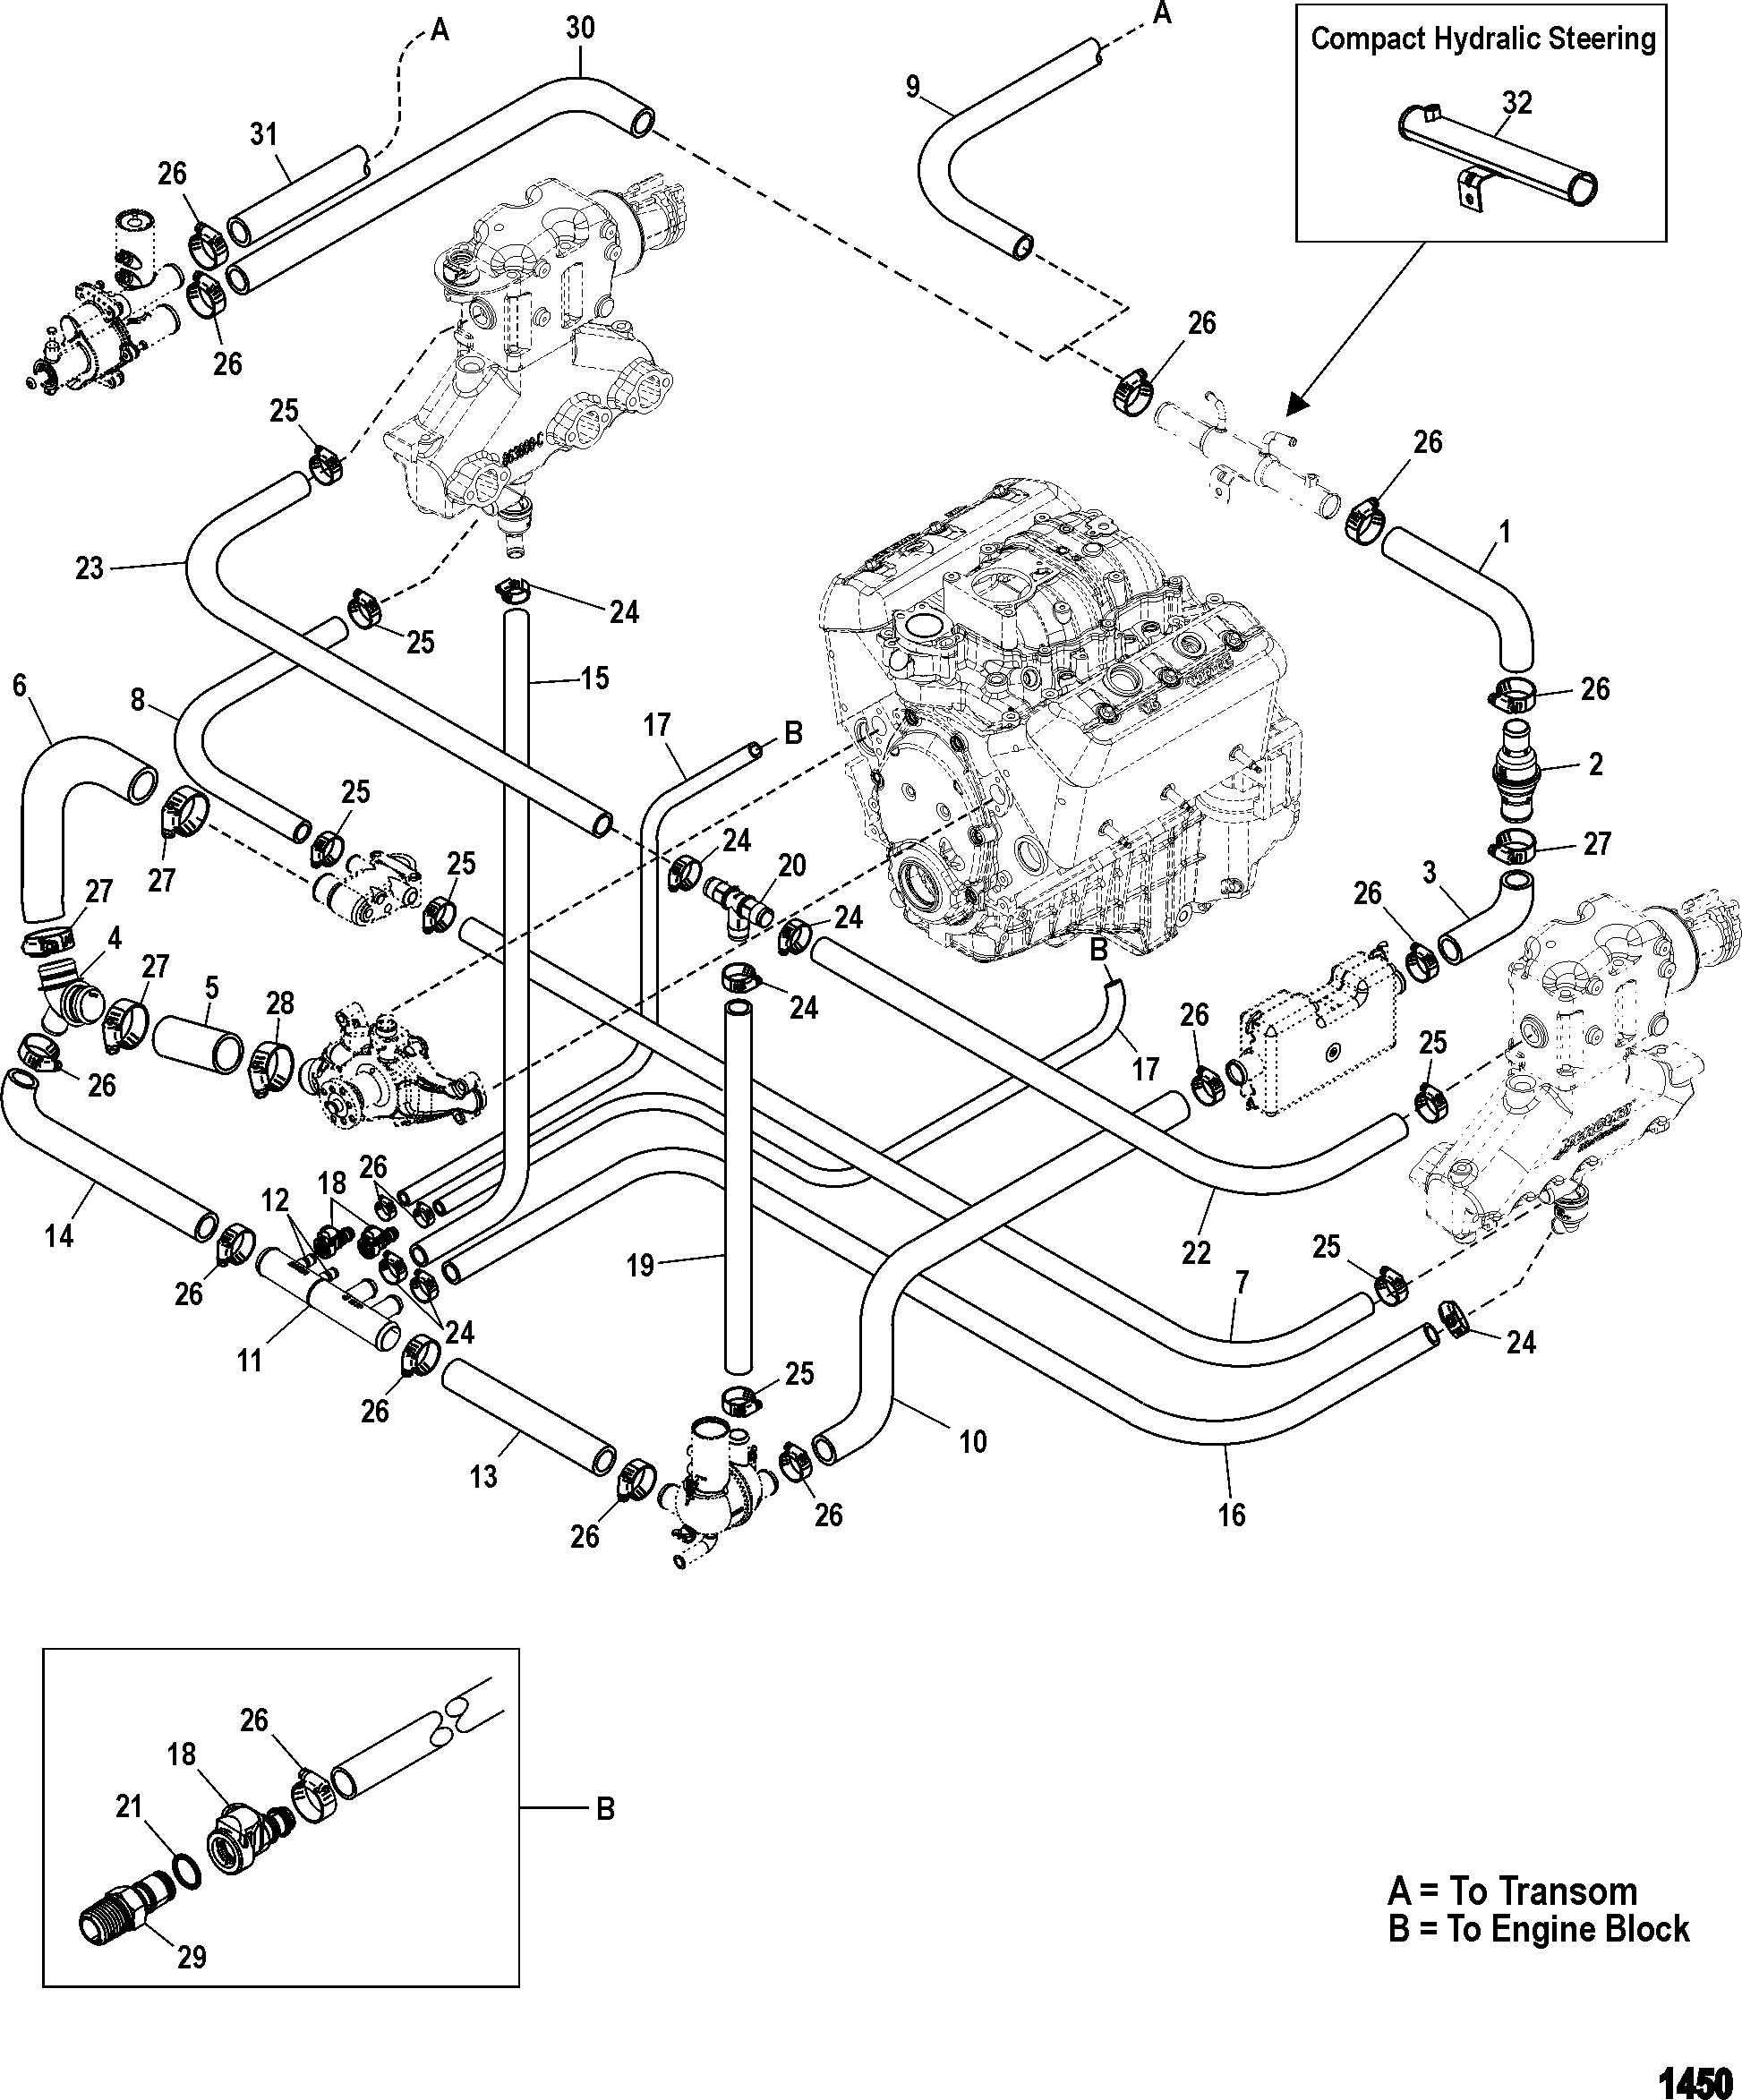 4 3 liter v6 vortec engine diagram 2 my wiring diagram rh detoxicrecenze com 4.3 Vortec Engine Scamatics Engine Schematic 4 3 Engine